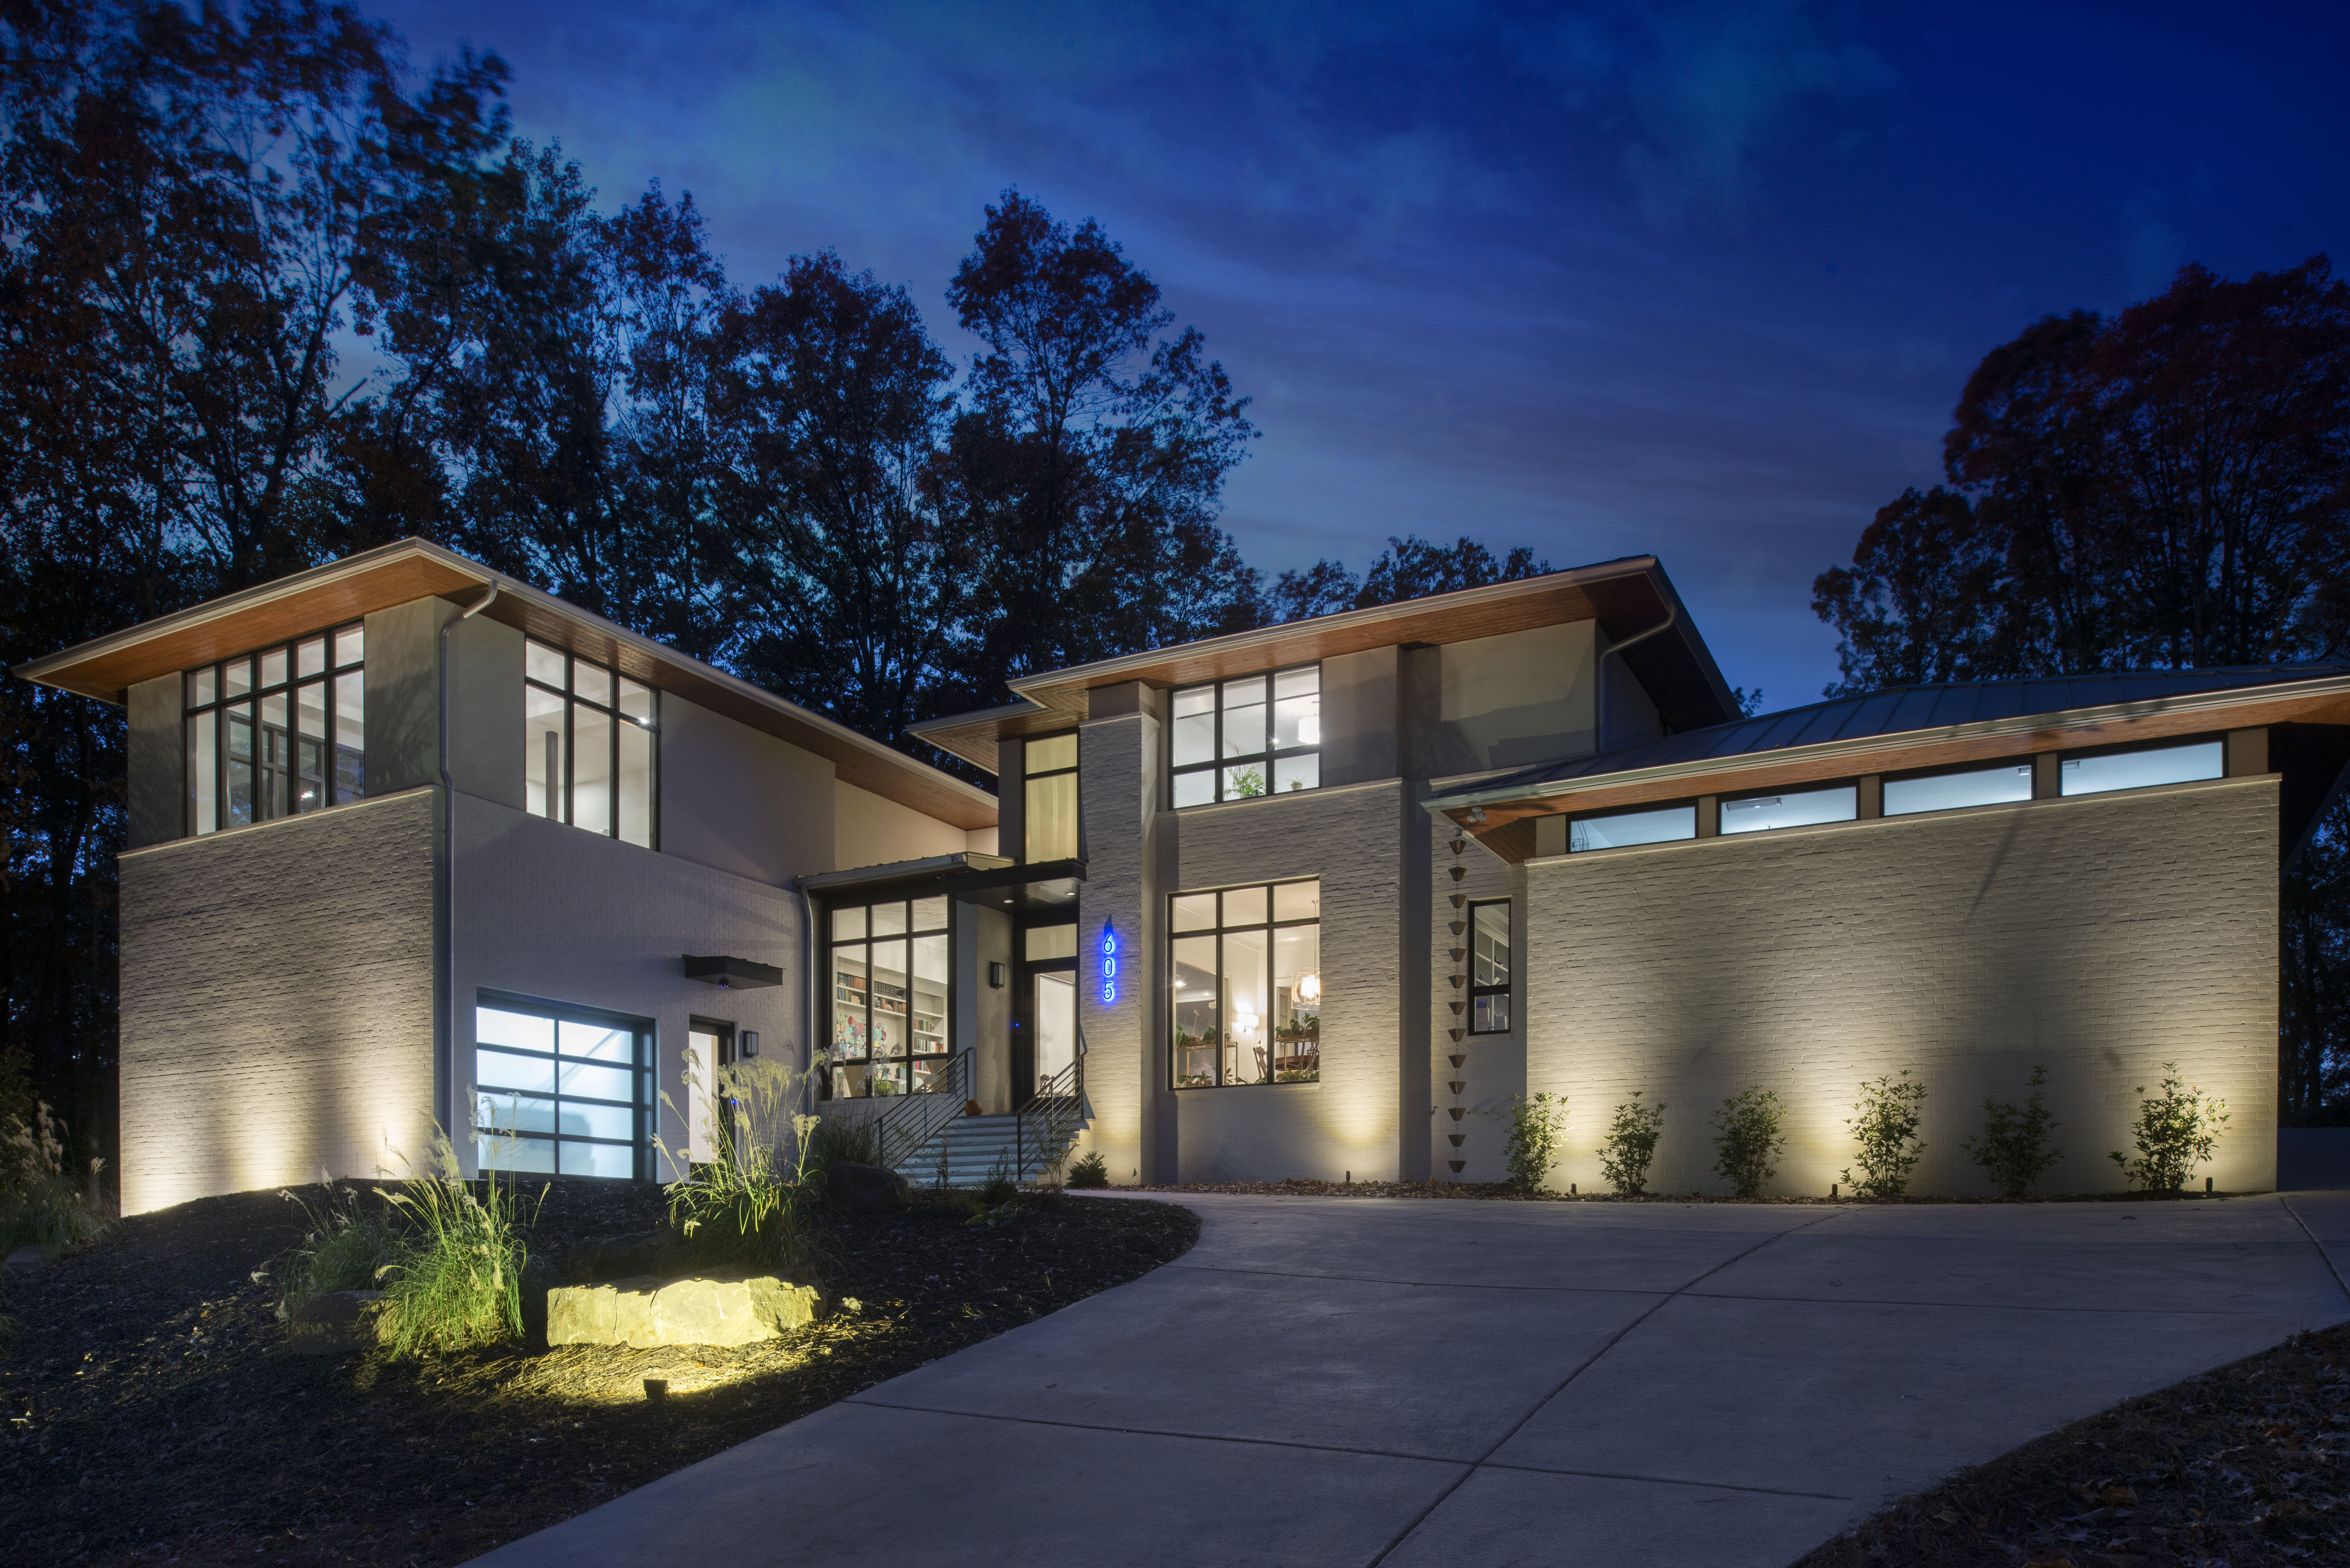 Atlanta design festival meet the eclectic modern homes on for Design homes llc